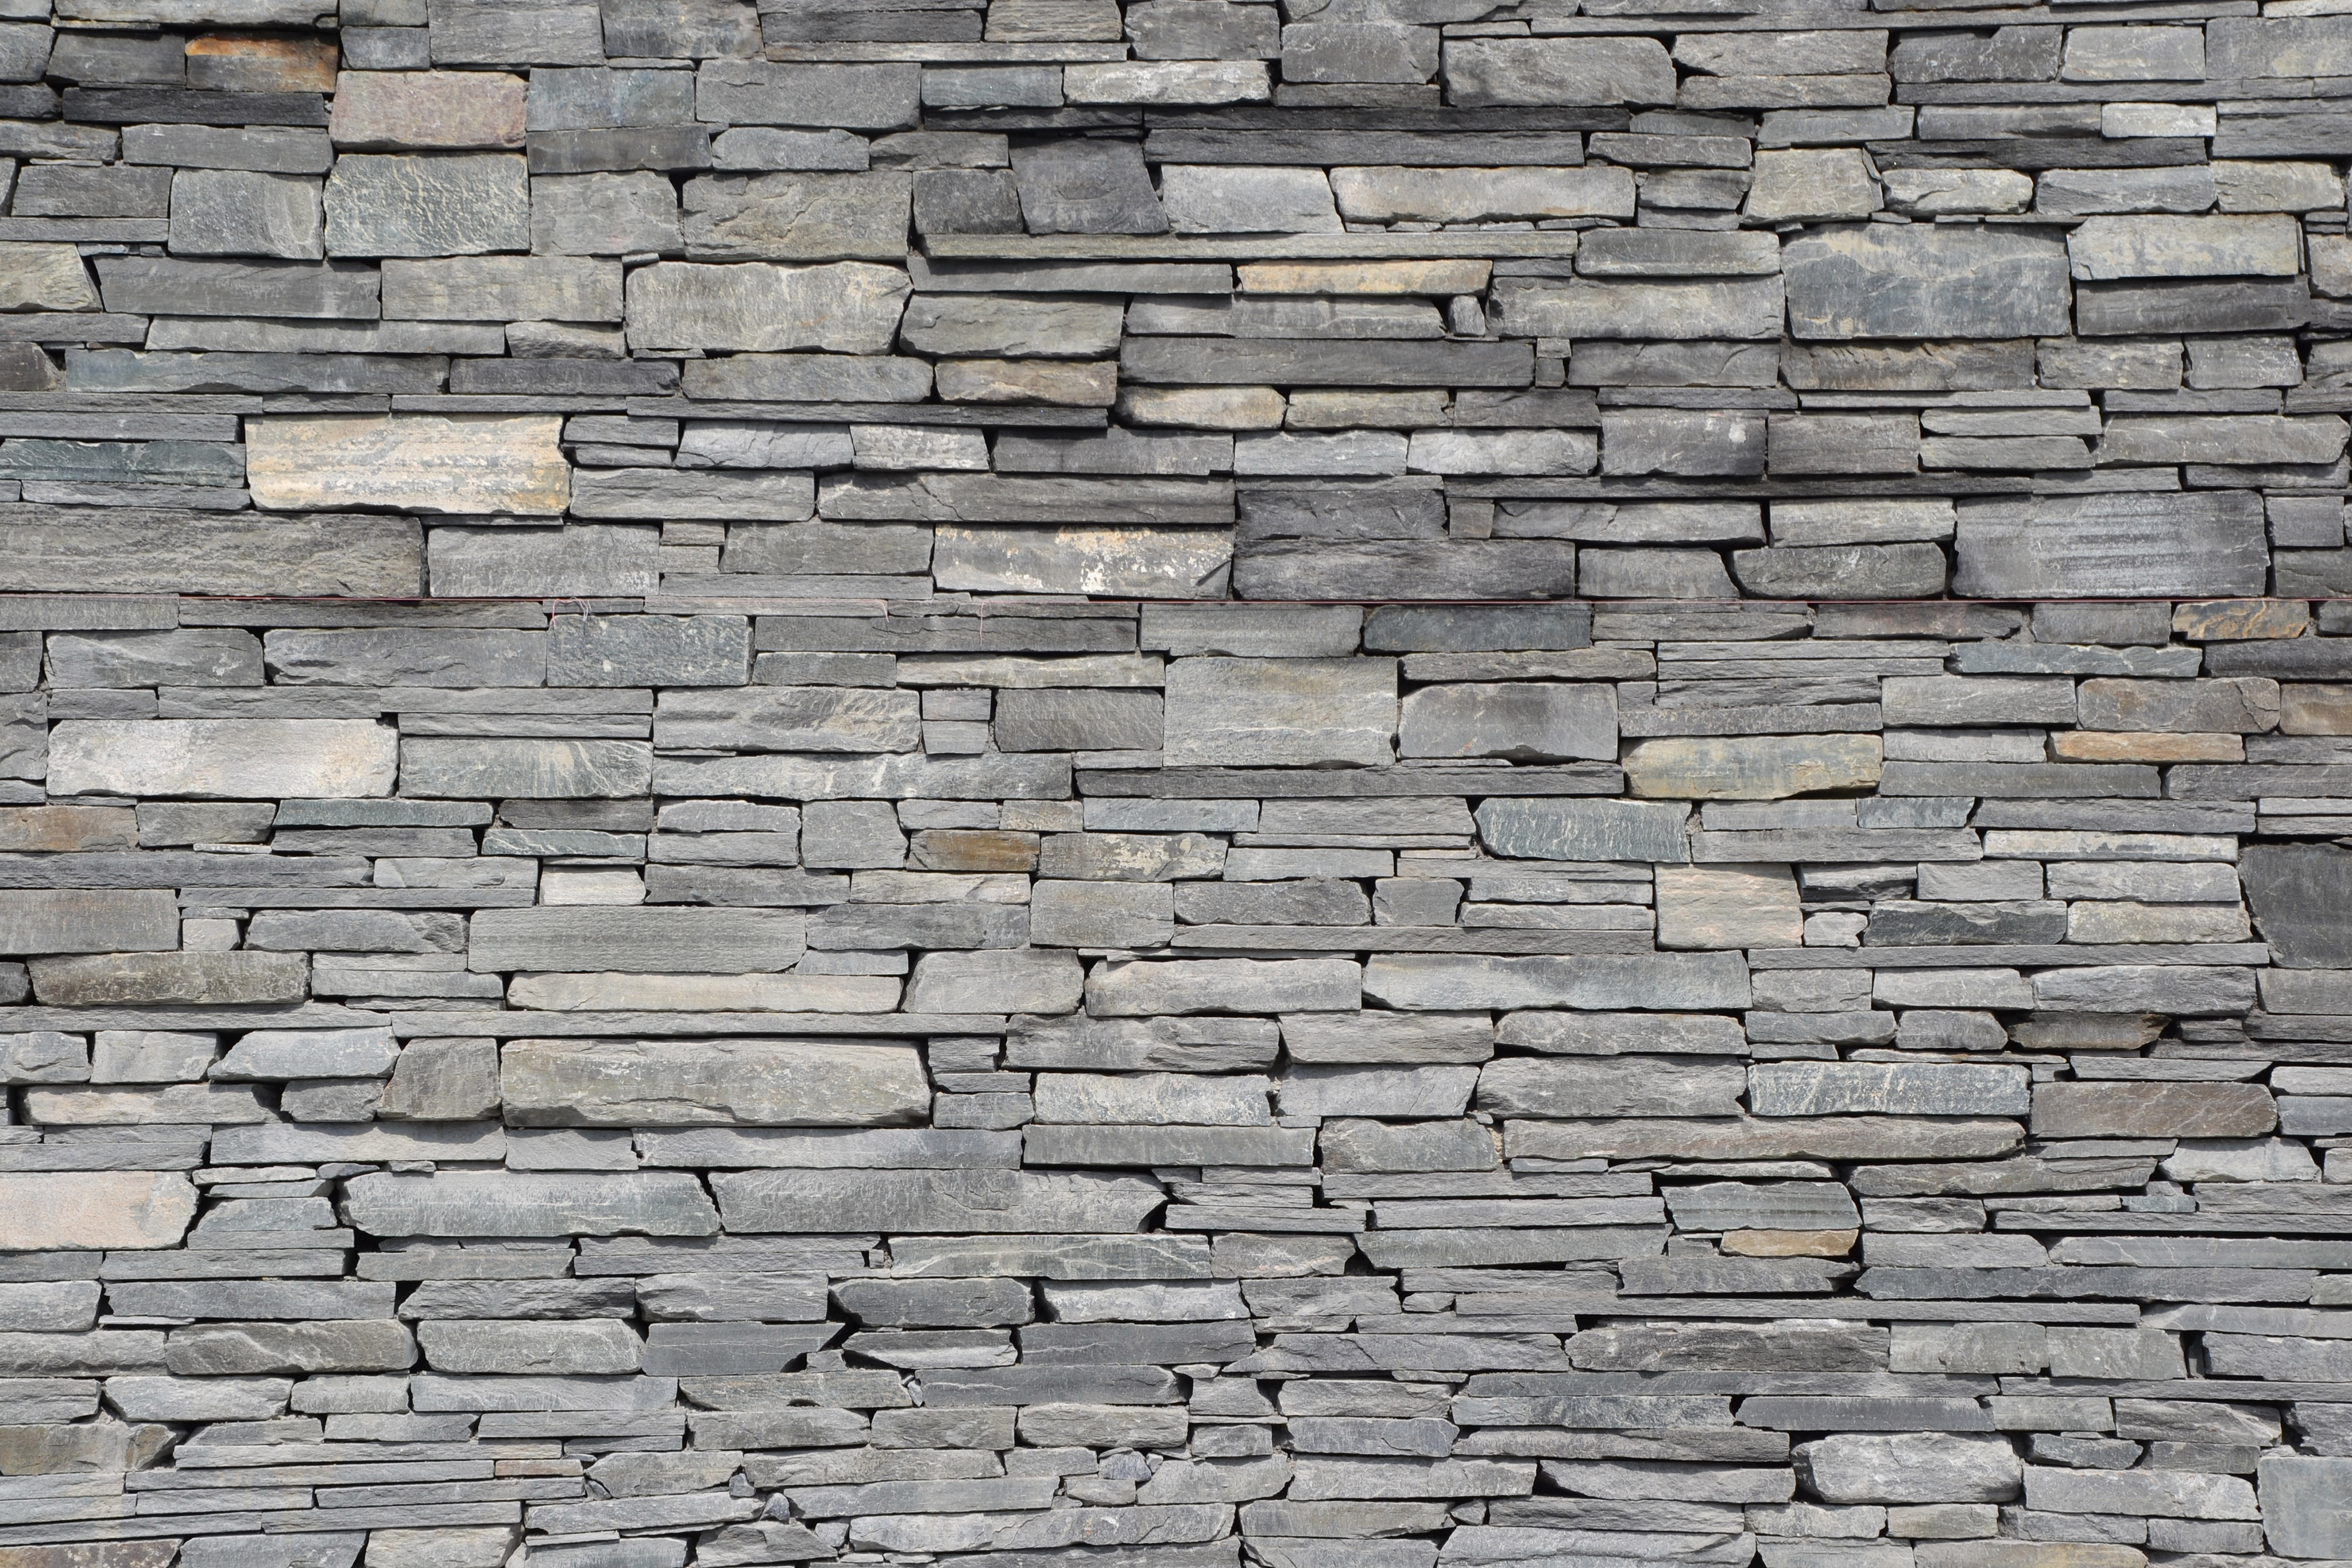 Stone block wall, Slab, Square, Rough, Rock, HQ Photo